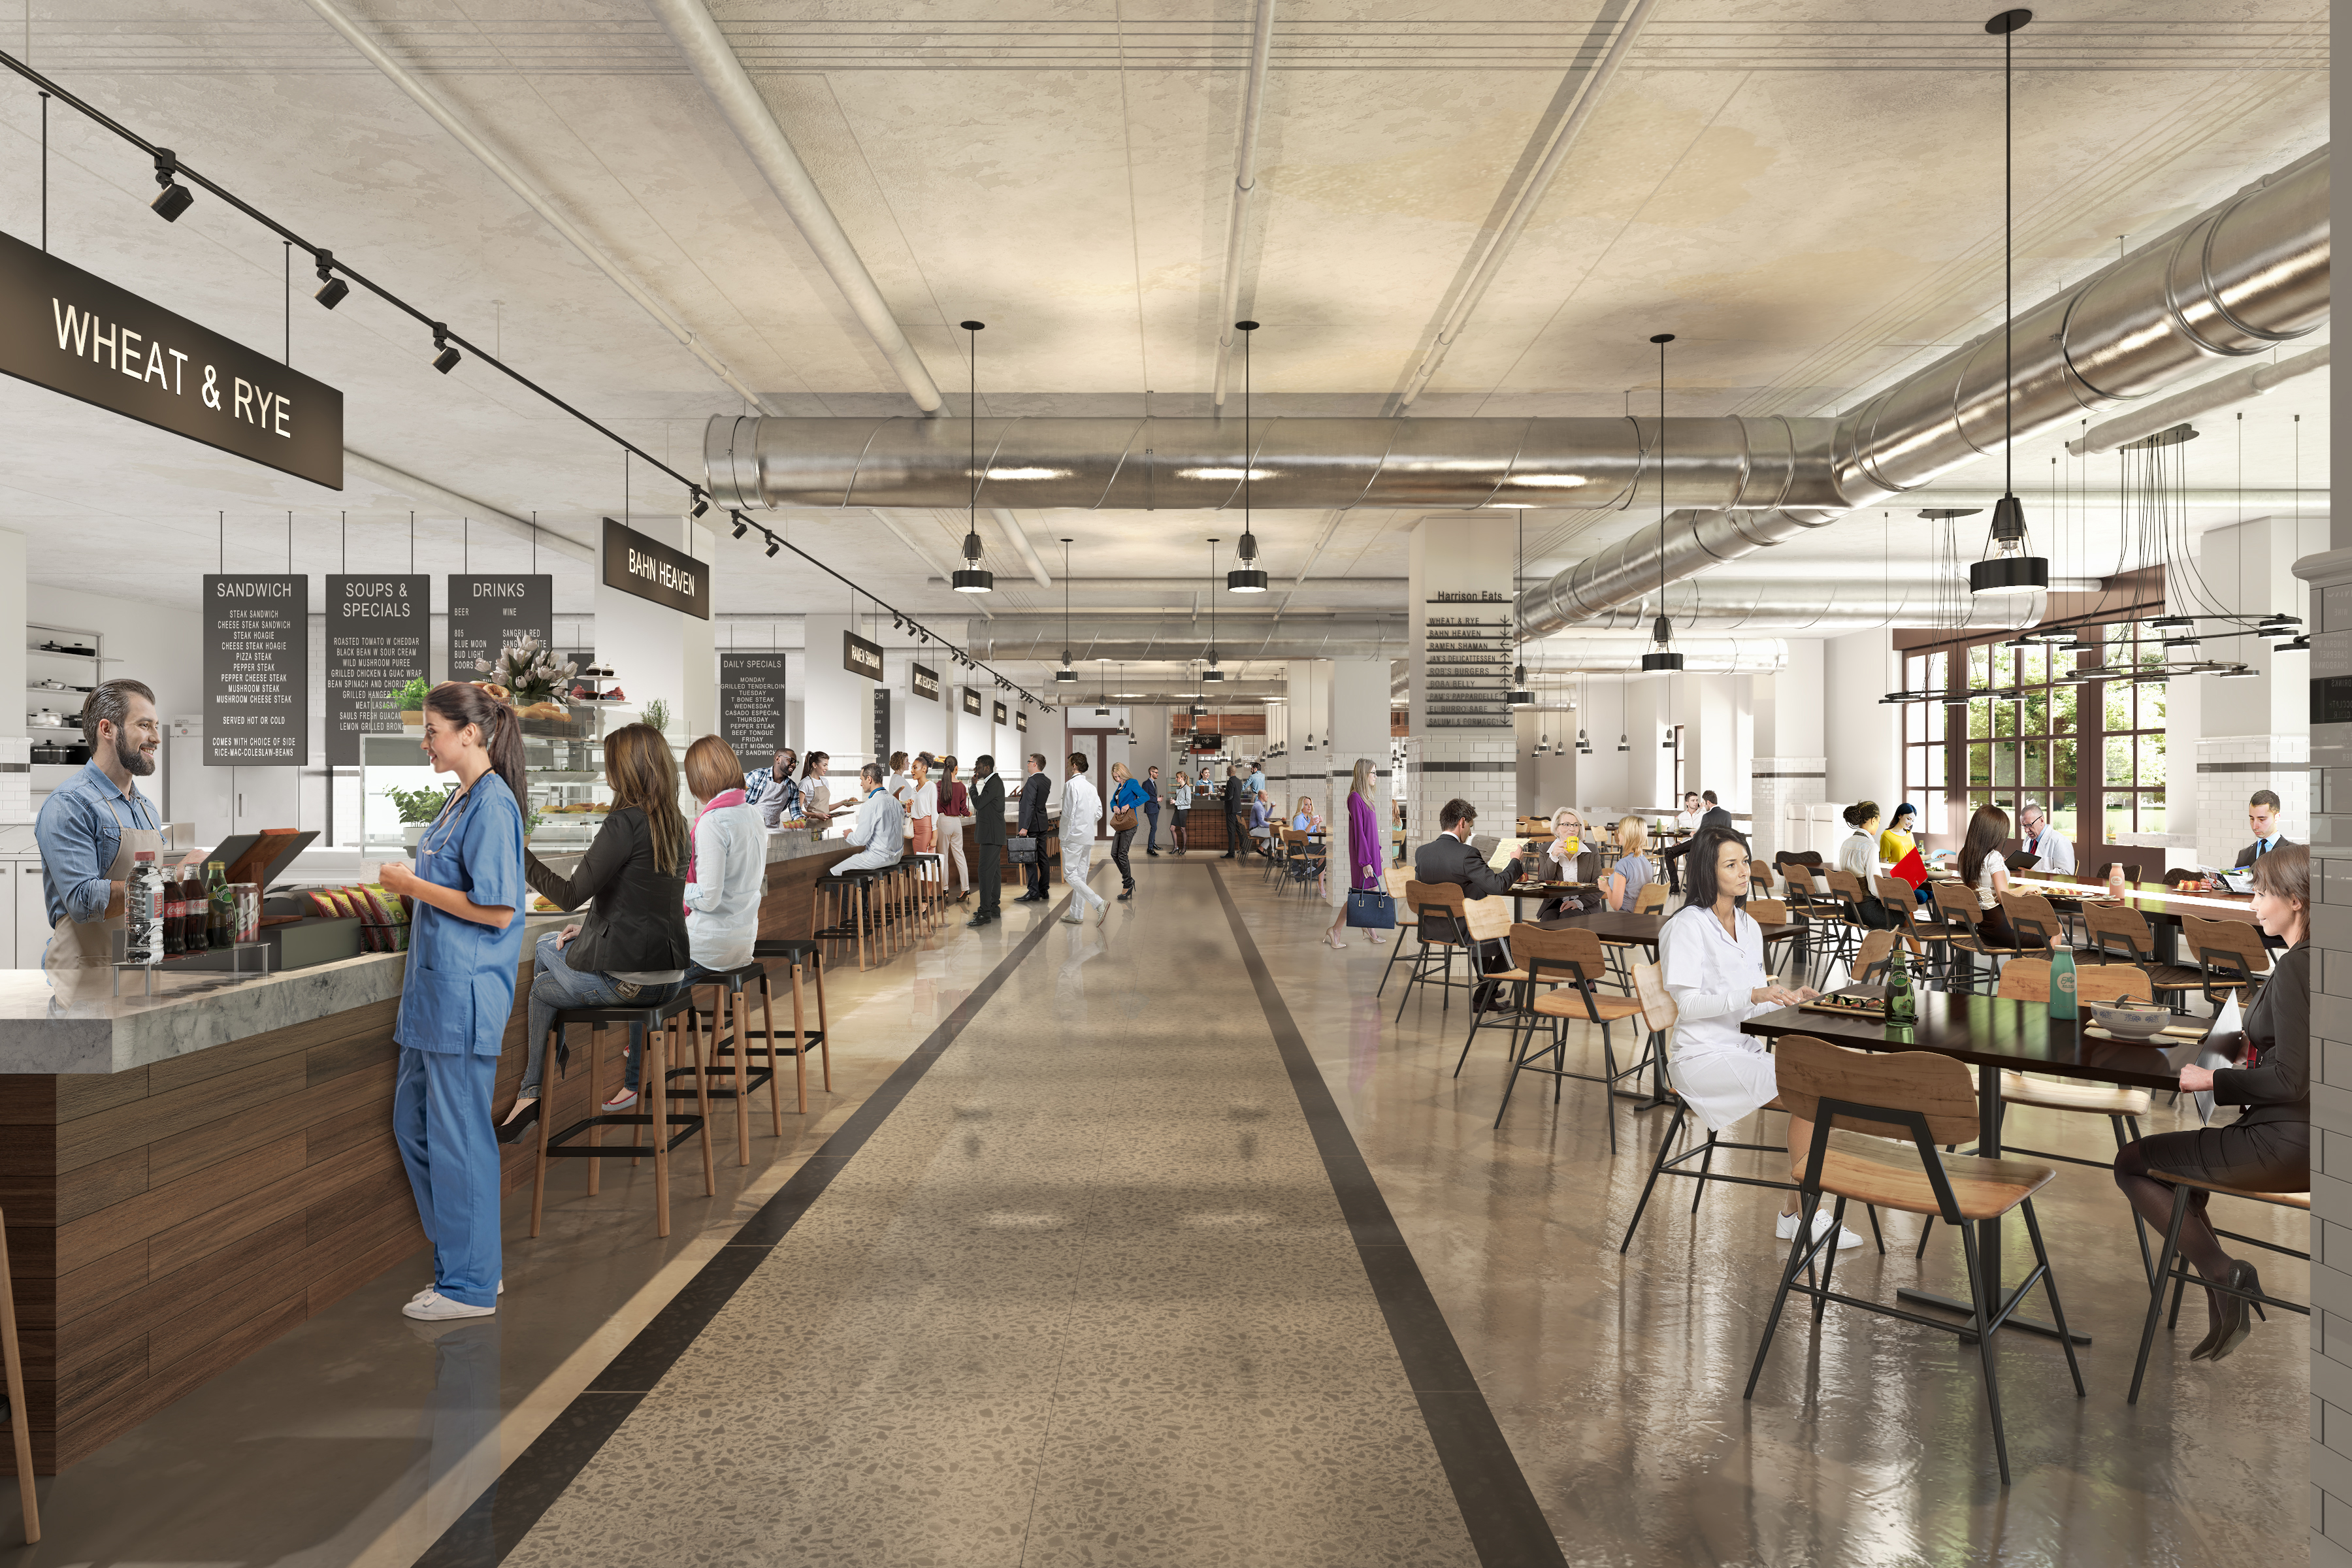 A rendering of people ordering and dining inside a food hall